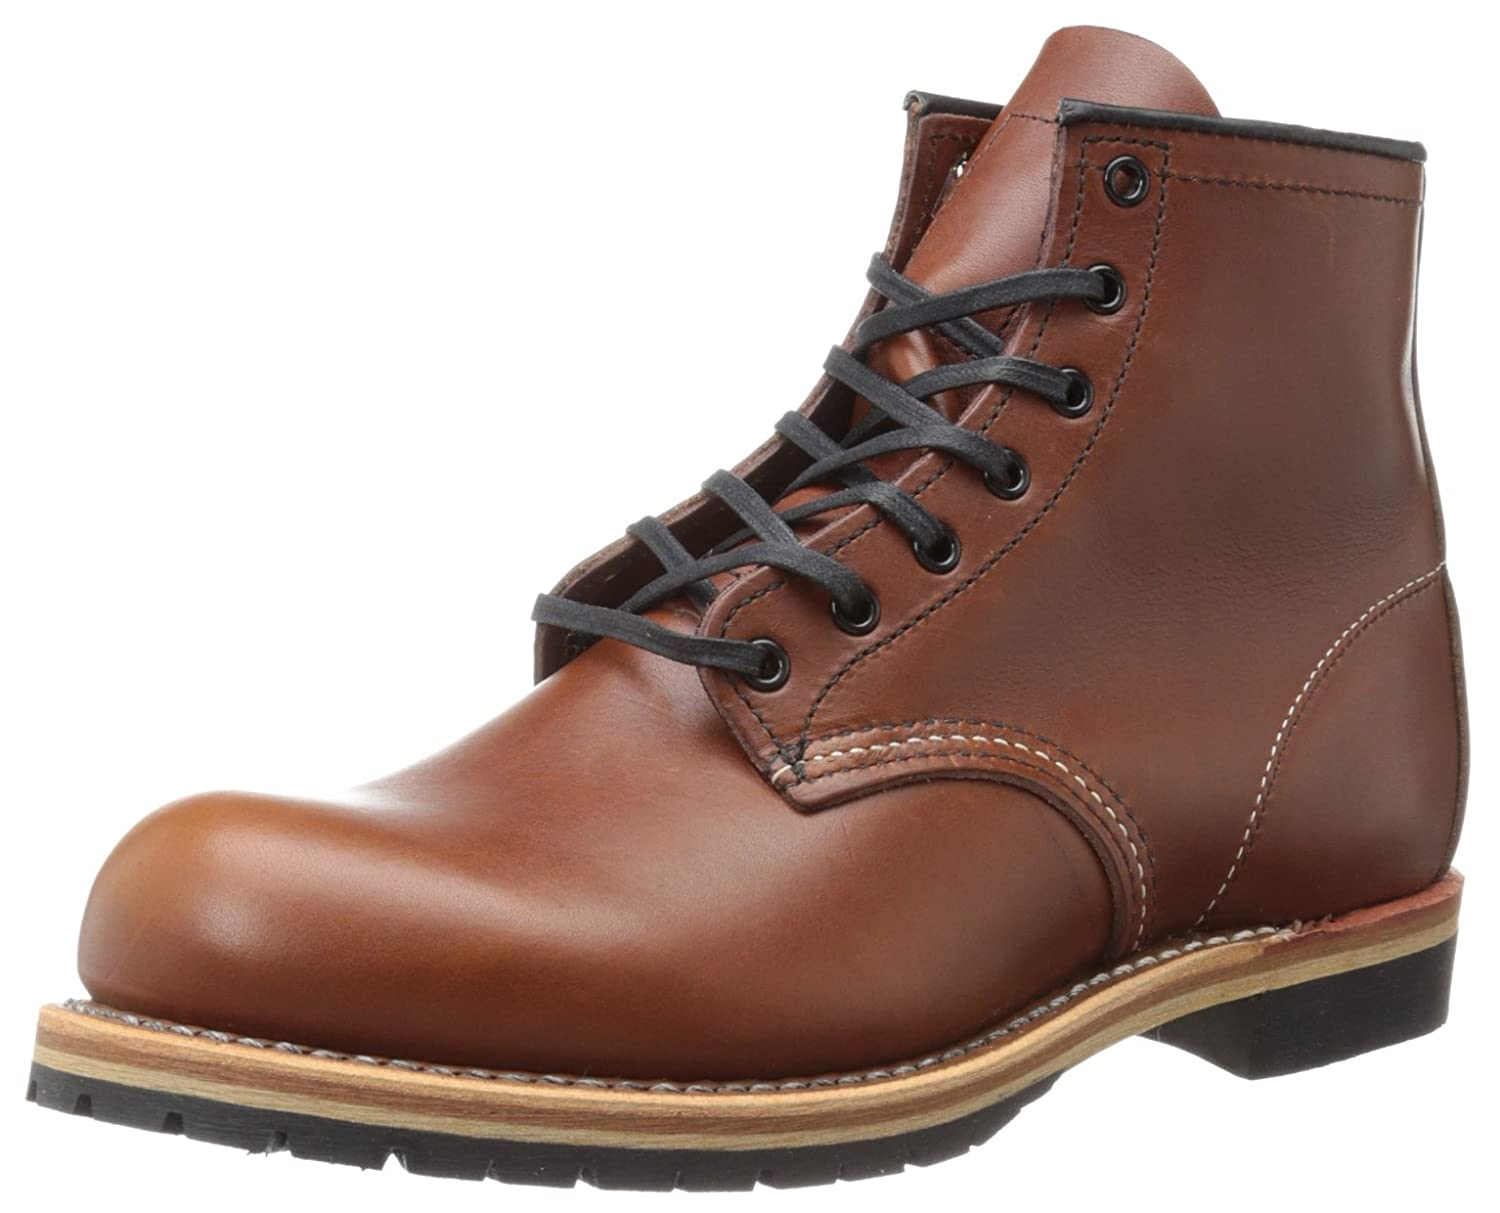 48624d0c0f5 Red Wing Heritage Men's Beckman Round 6